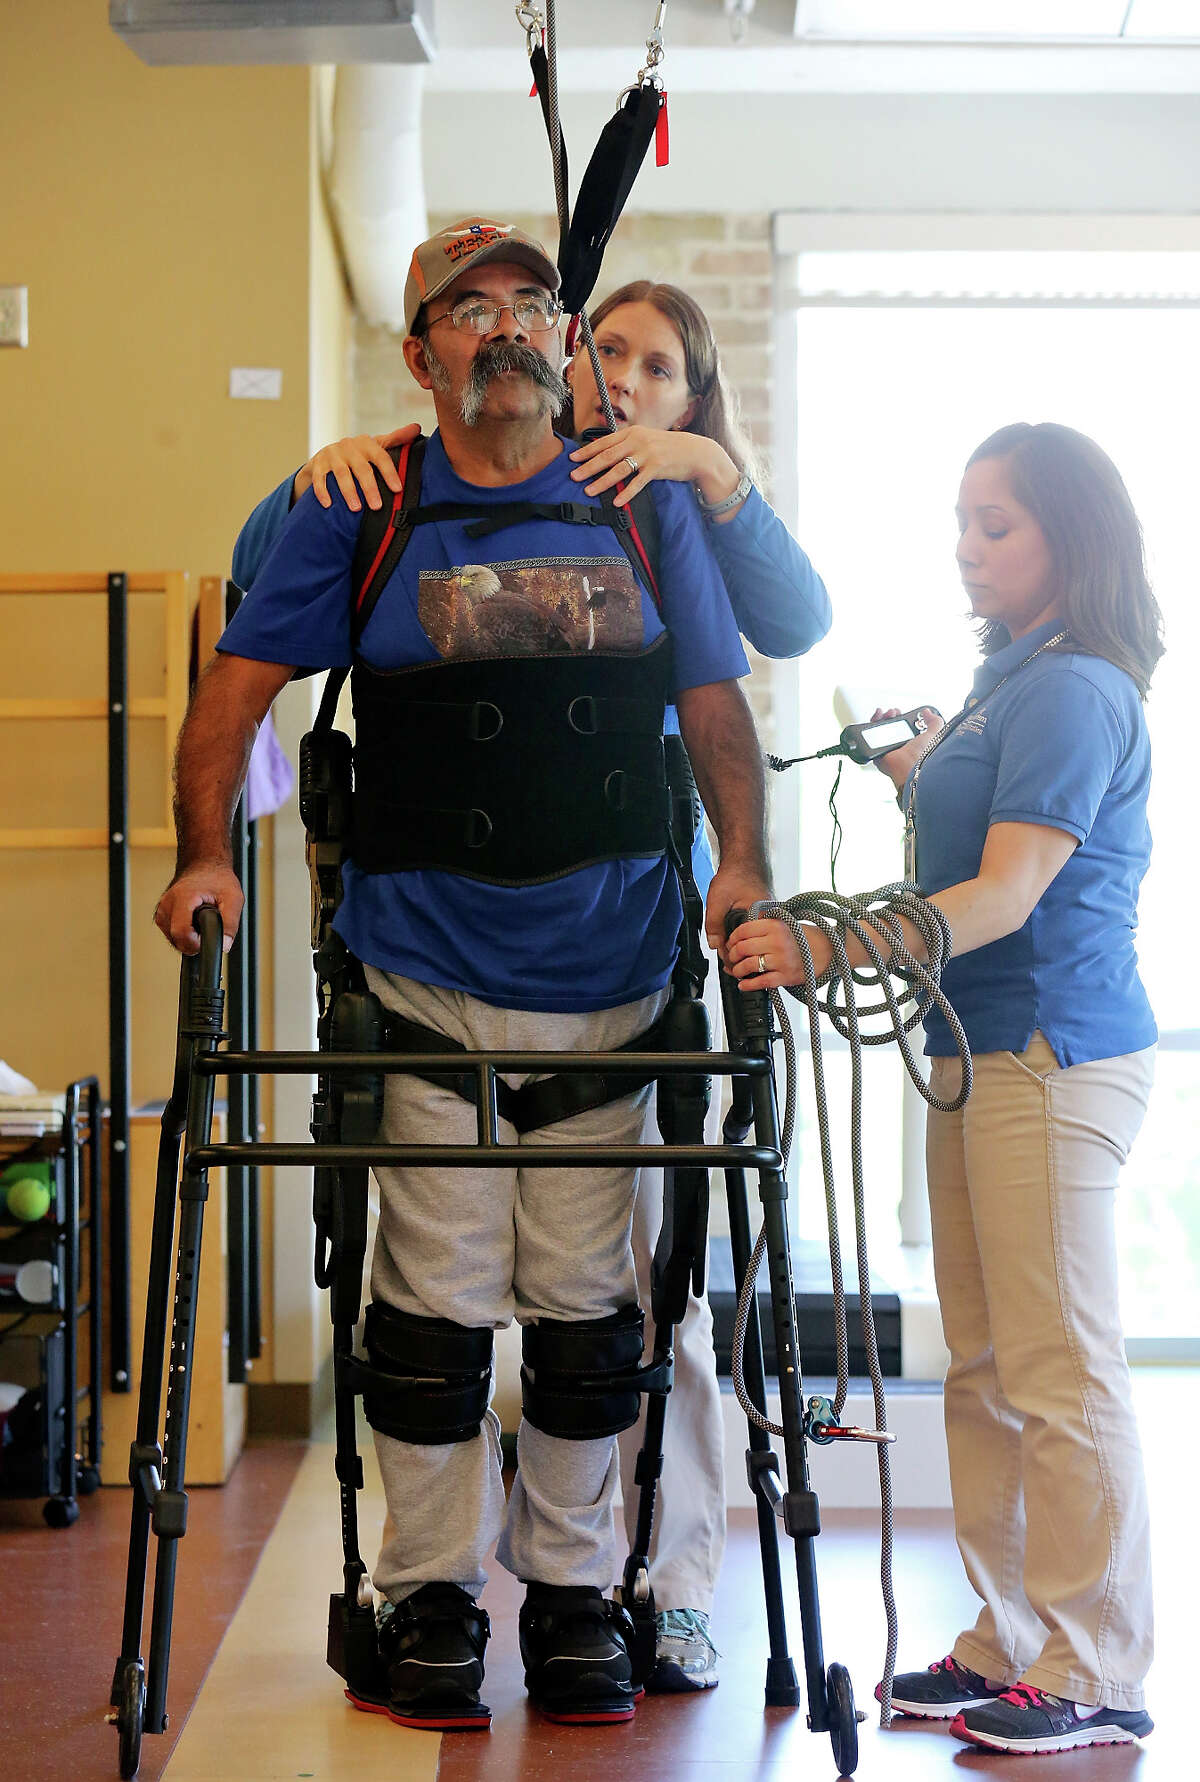 Physical therapists Chara Rodriguez (left) and Julietta Douglas (right) work with Pedro Lozano, 56 while he wears a Ekso exoskeleton suit to help him walk, during therapy Thursday April 10, 2014 at the University Health System's Reeves Rehabilitation Center. Lozano is paralyzed on his left side after suffering a stroke Dec. 27, 2013.